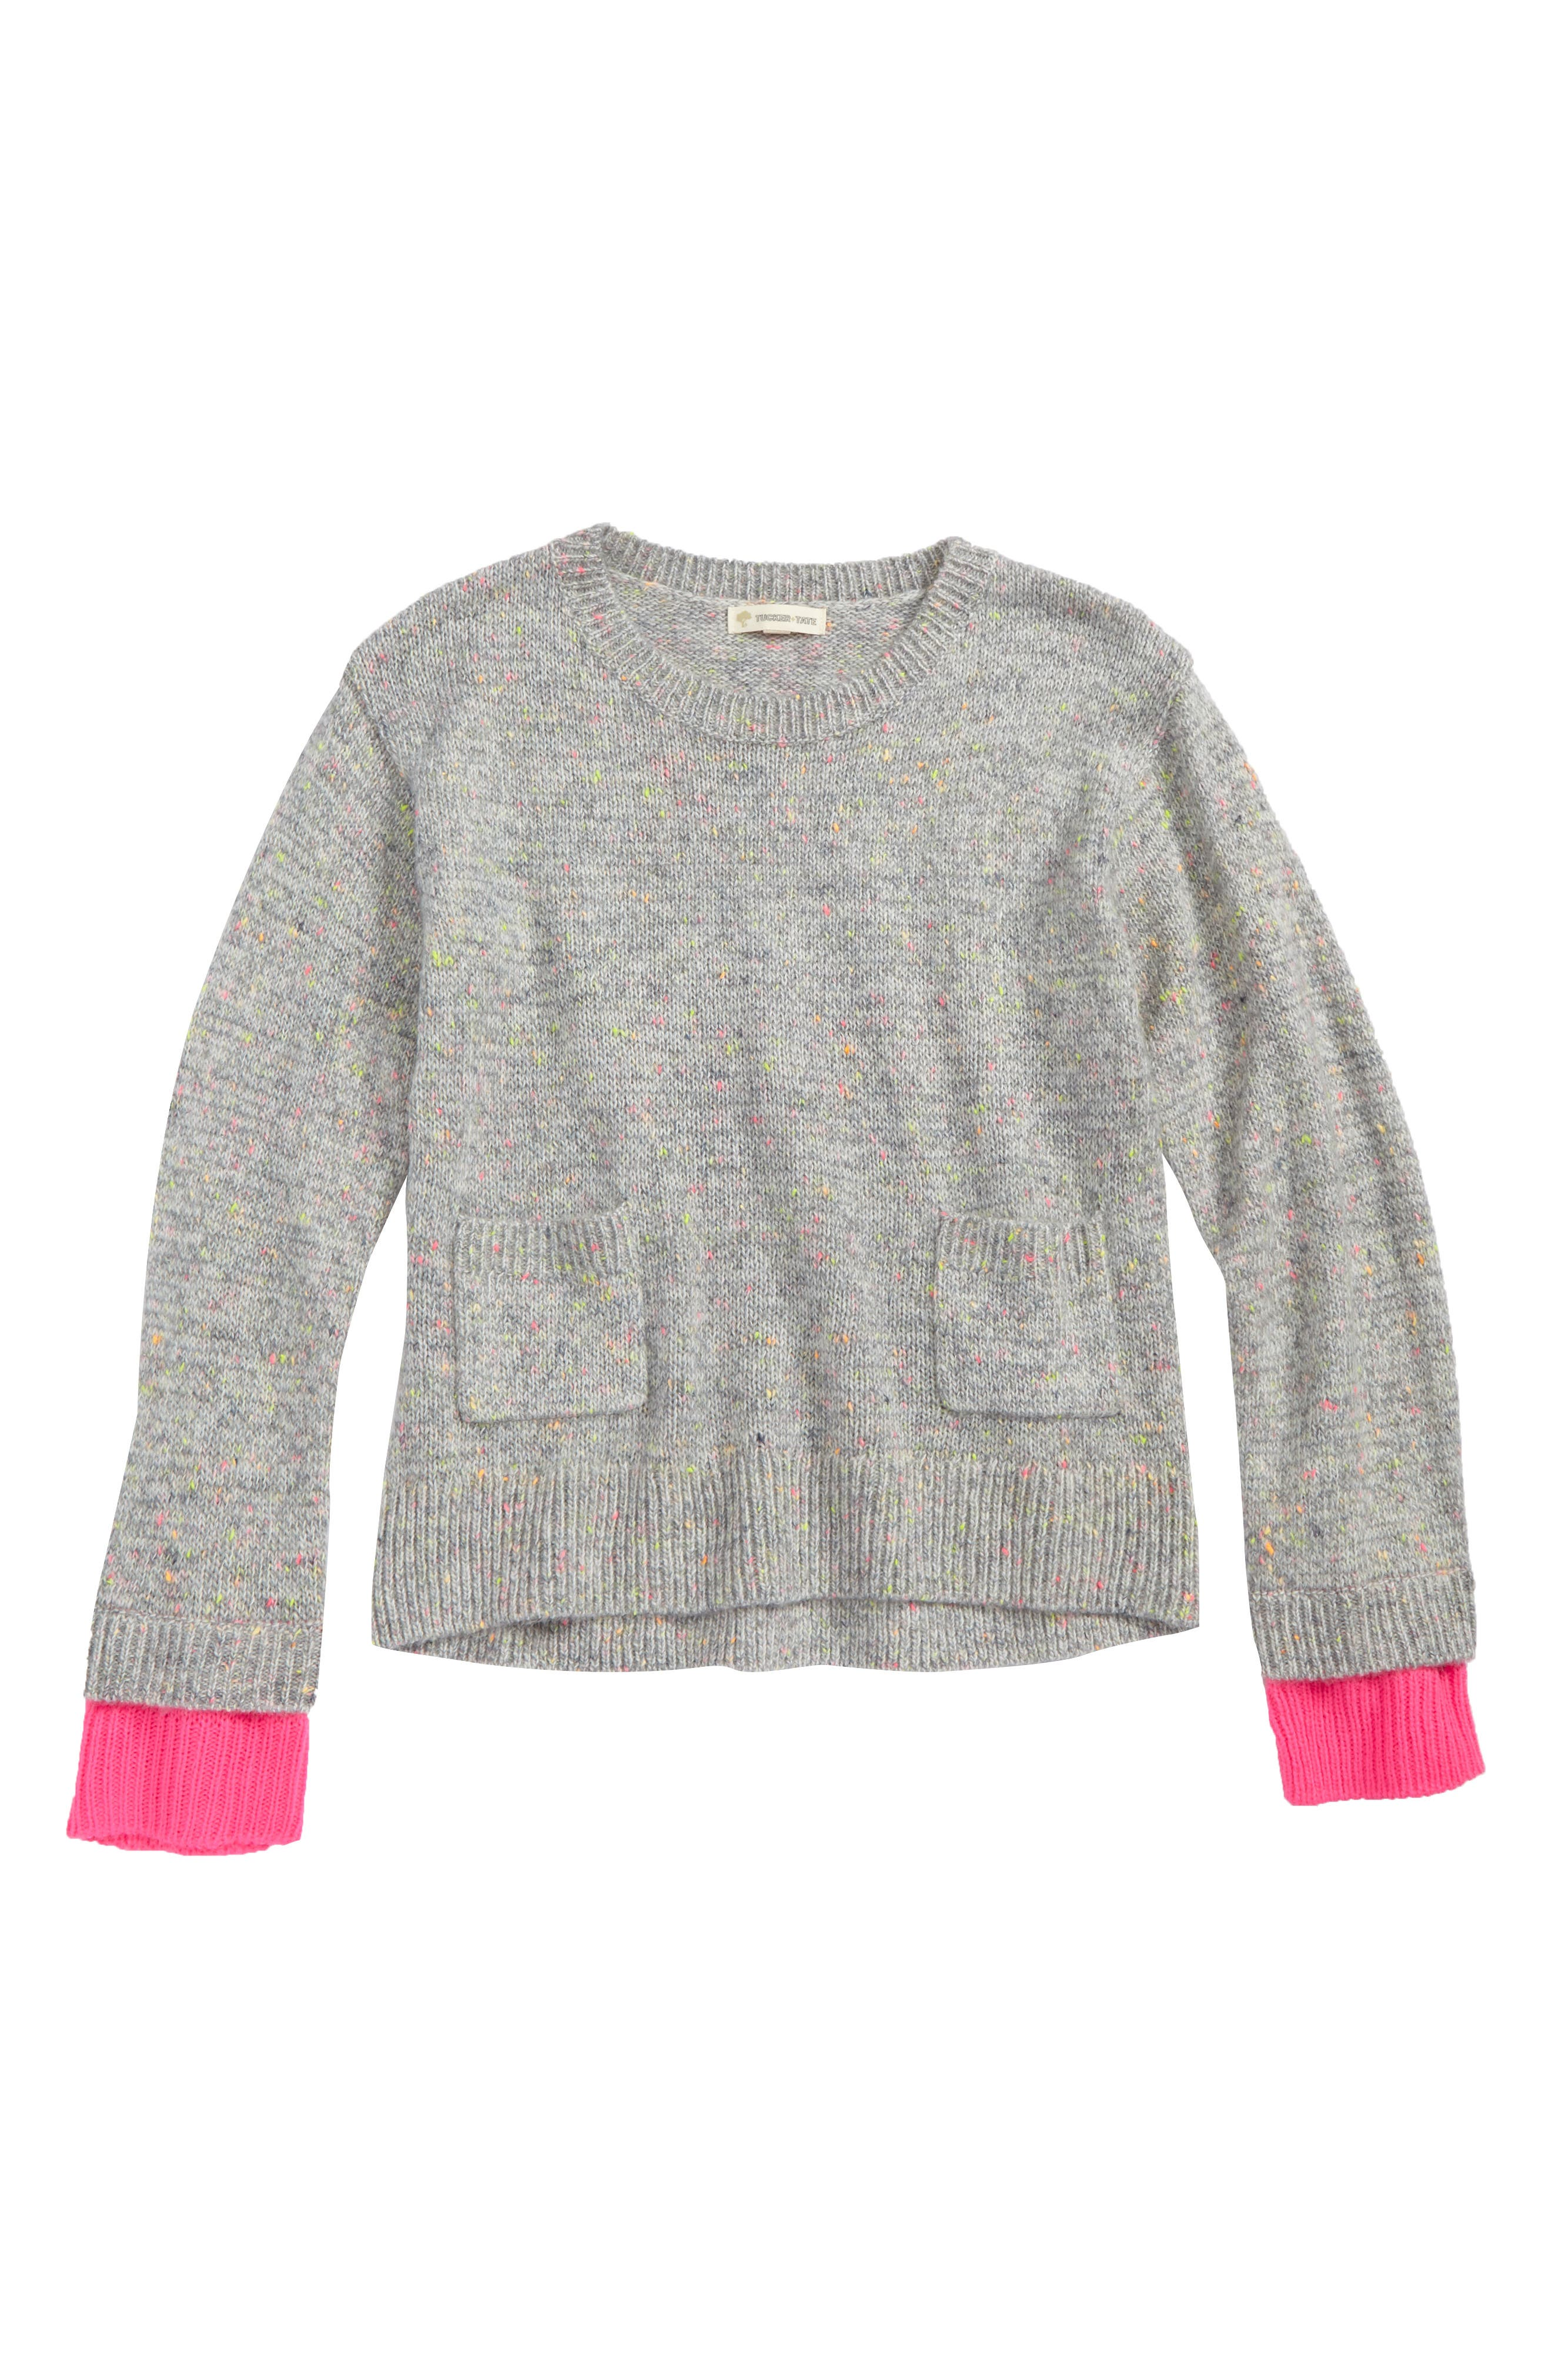 Neon Knit Sweater,                         Main,                         color,